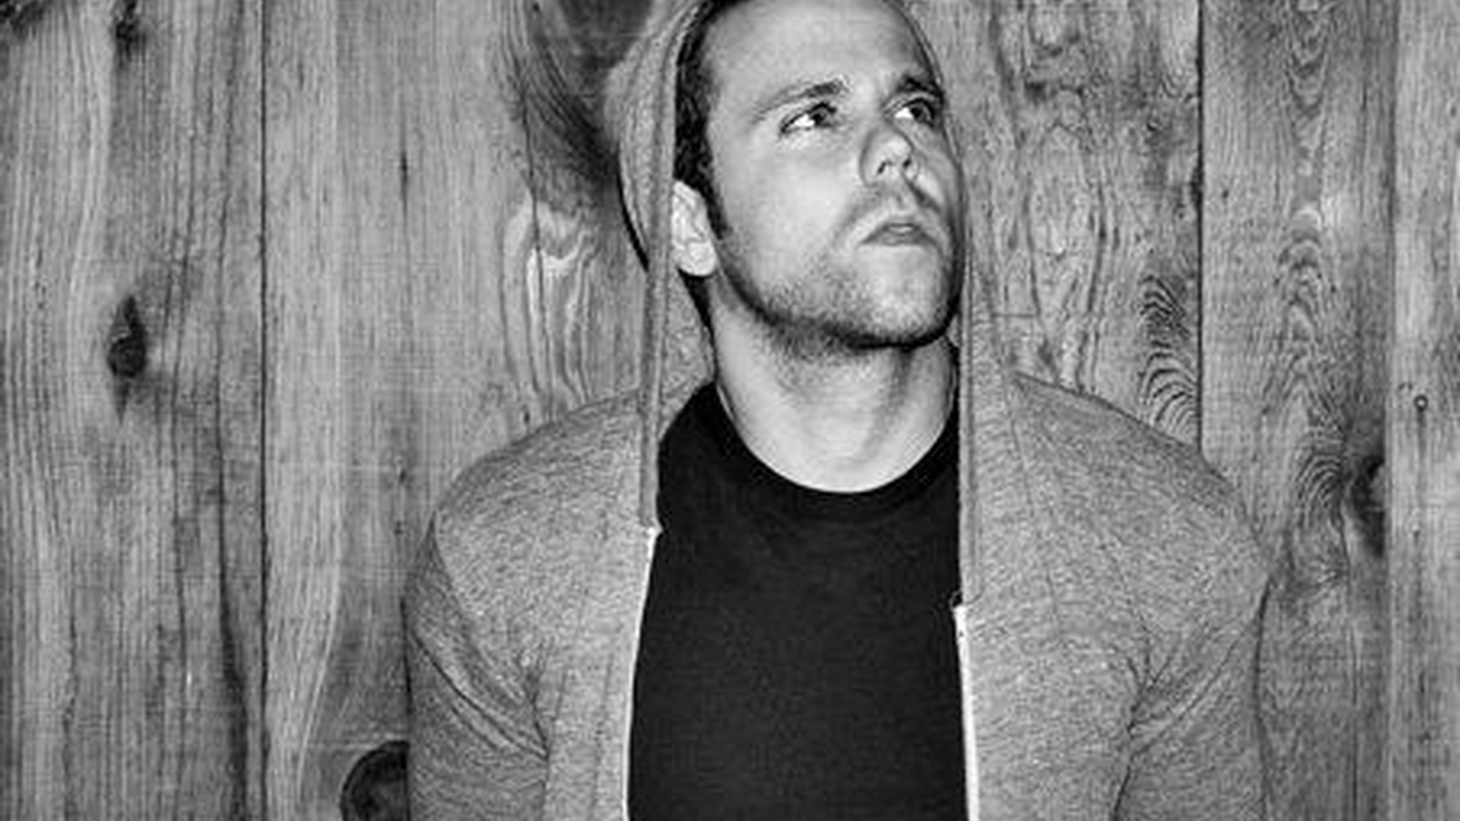 French musician Anthony Gonzalez, best known as M83, creates glorious music filled with awe and joy...